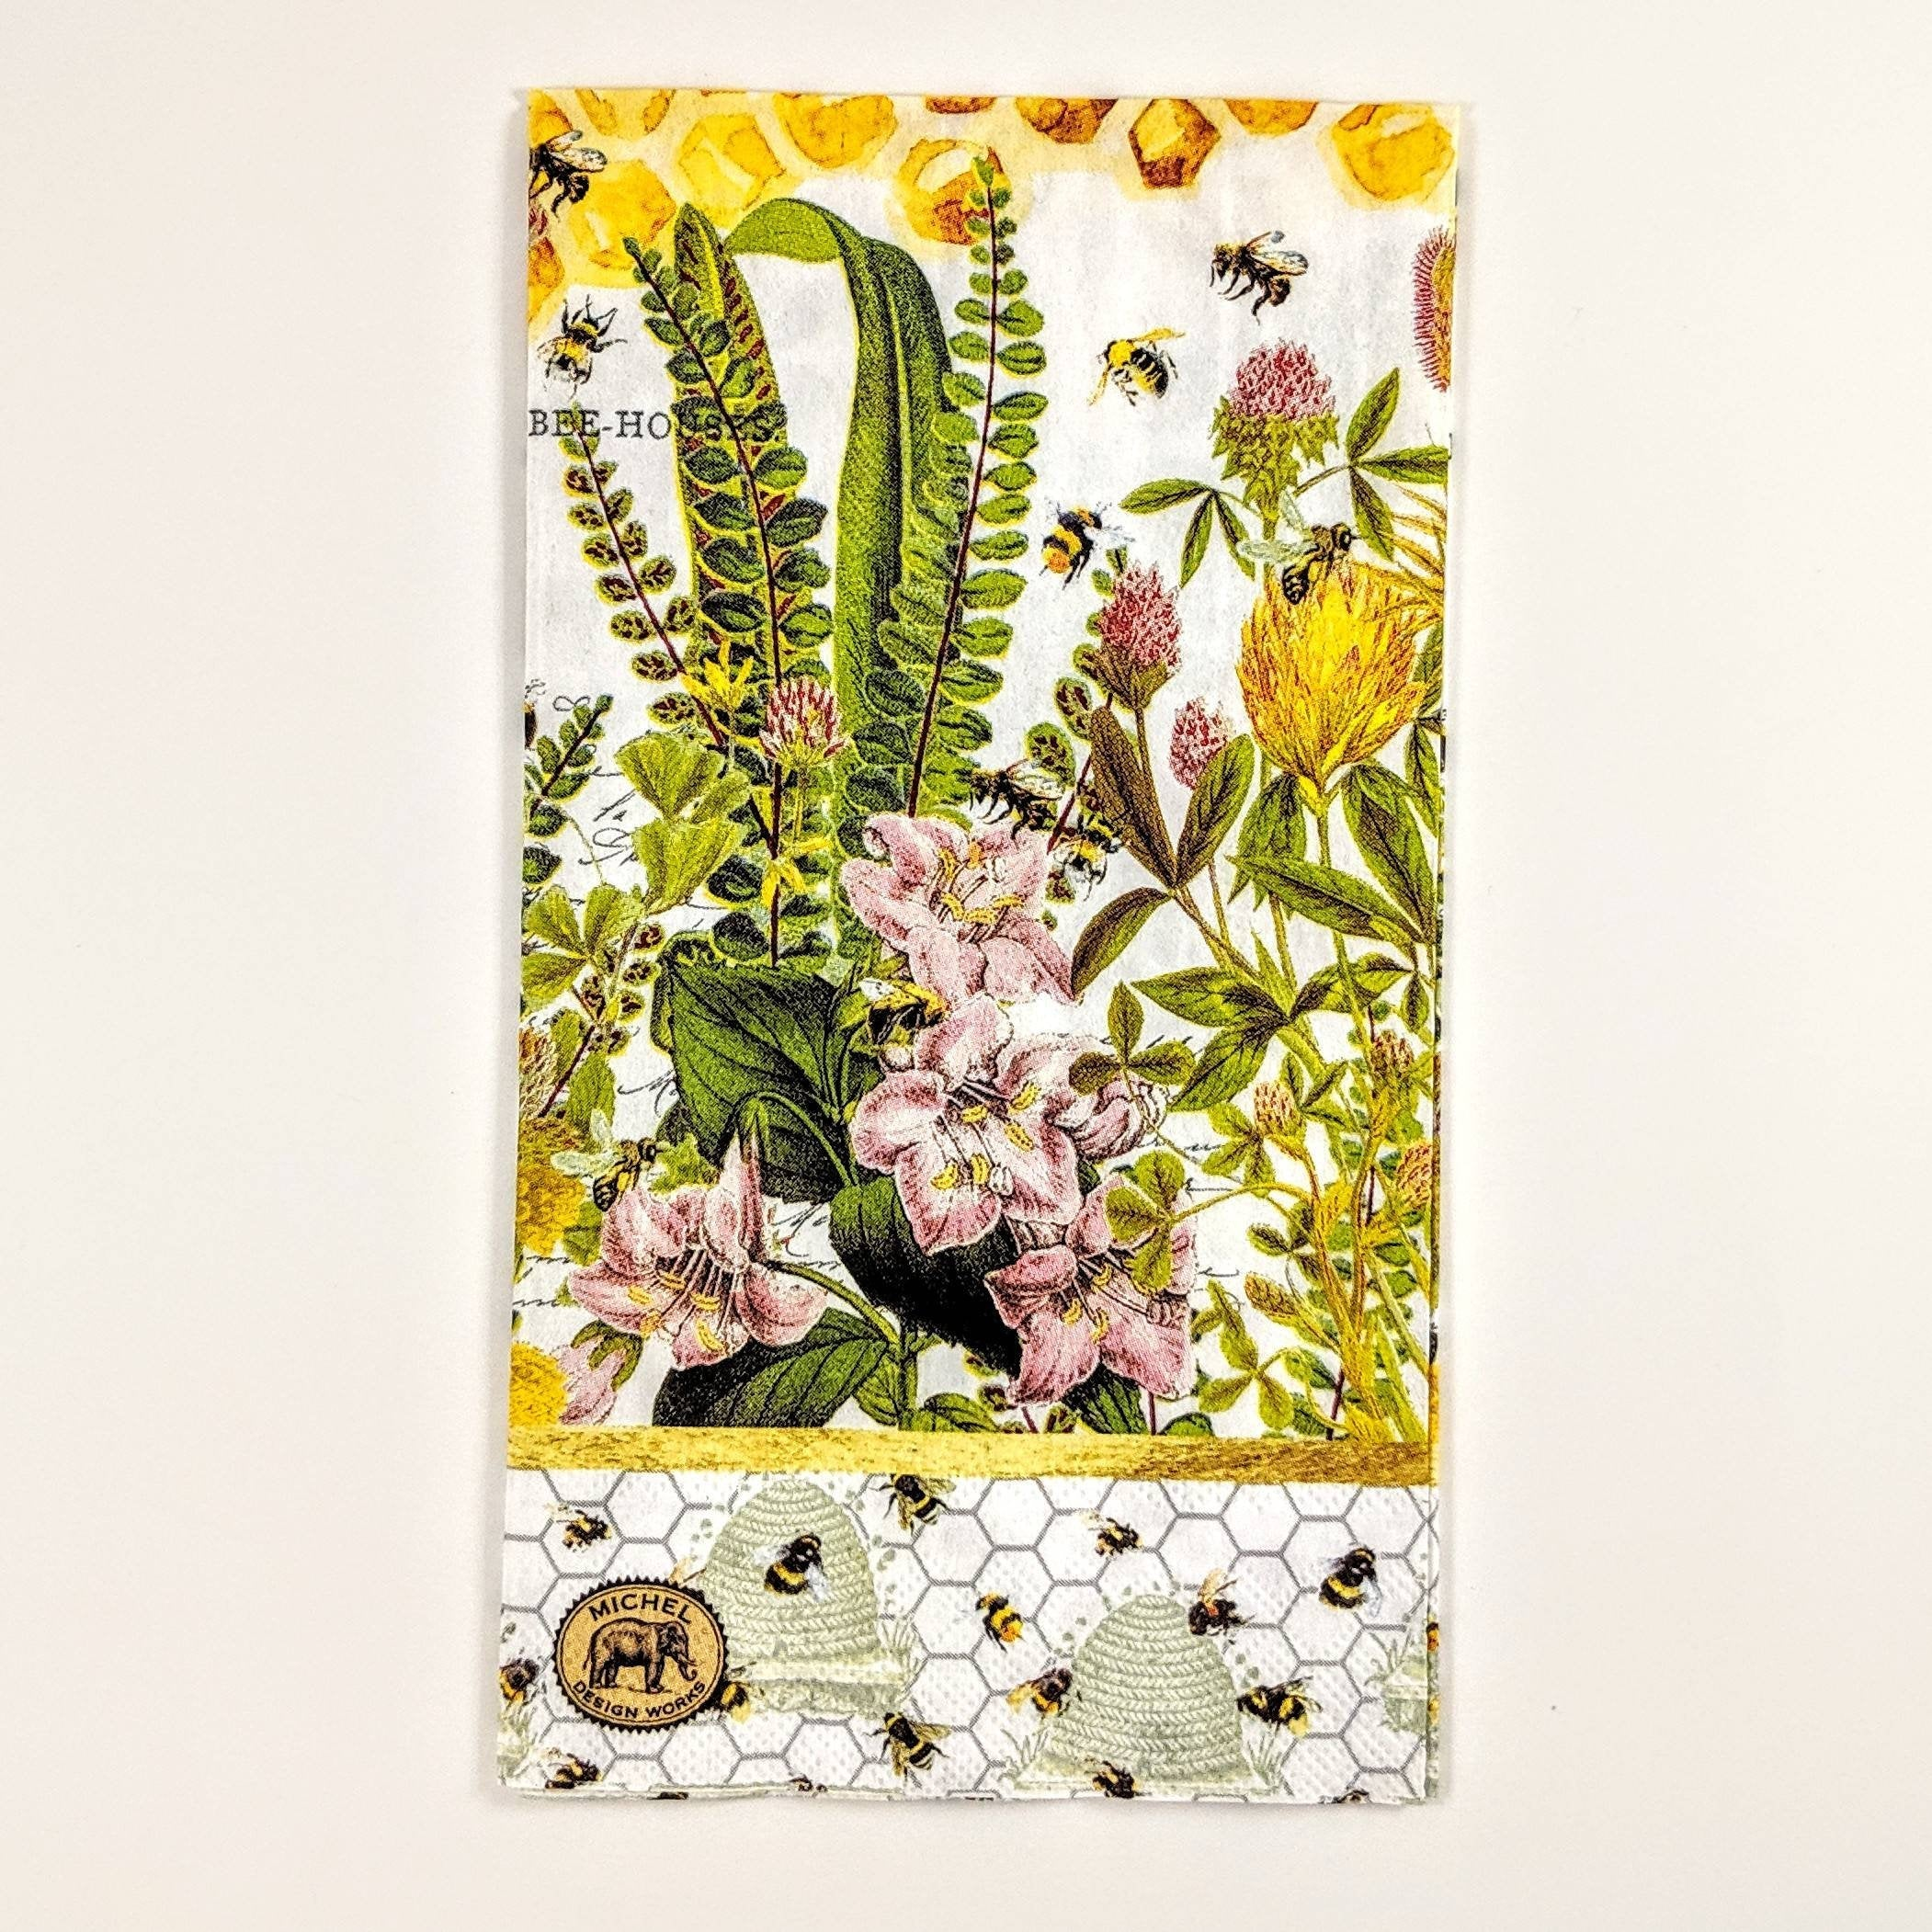 Honey Bees and Clover - Ninnys Napkins